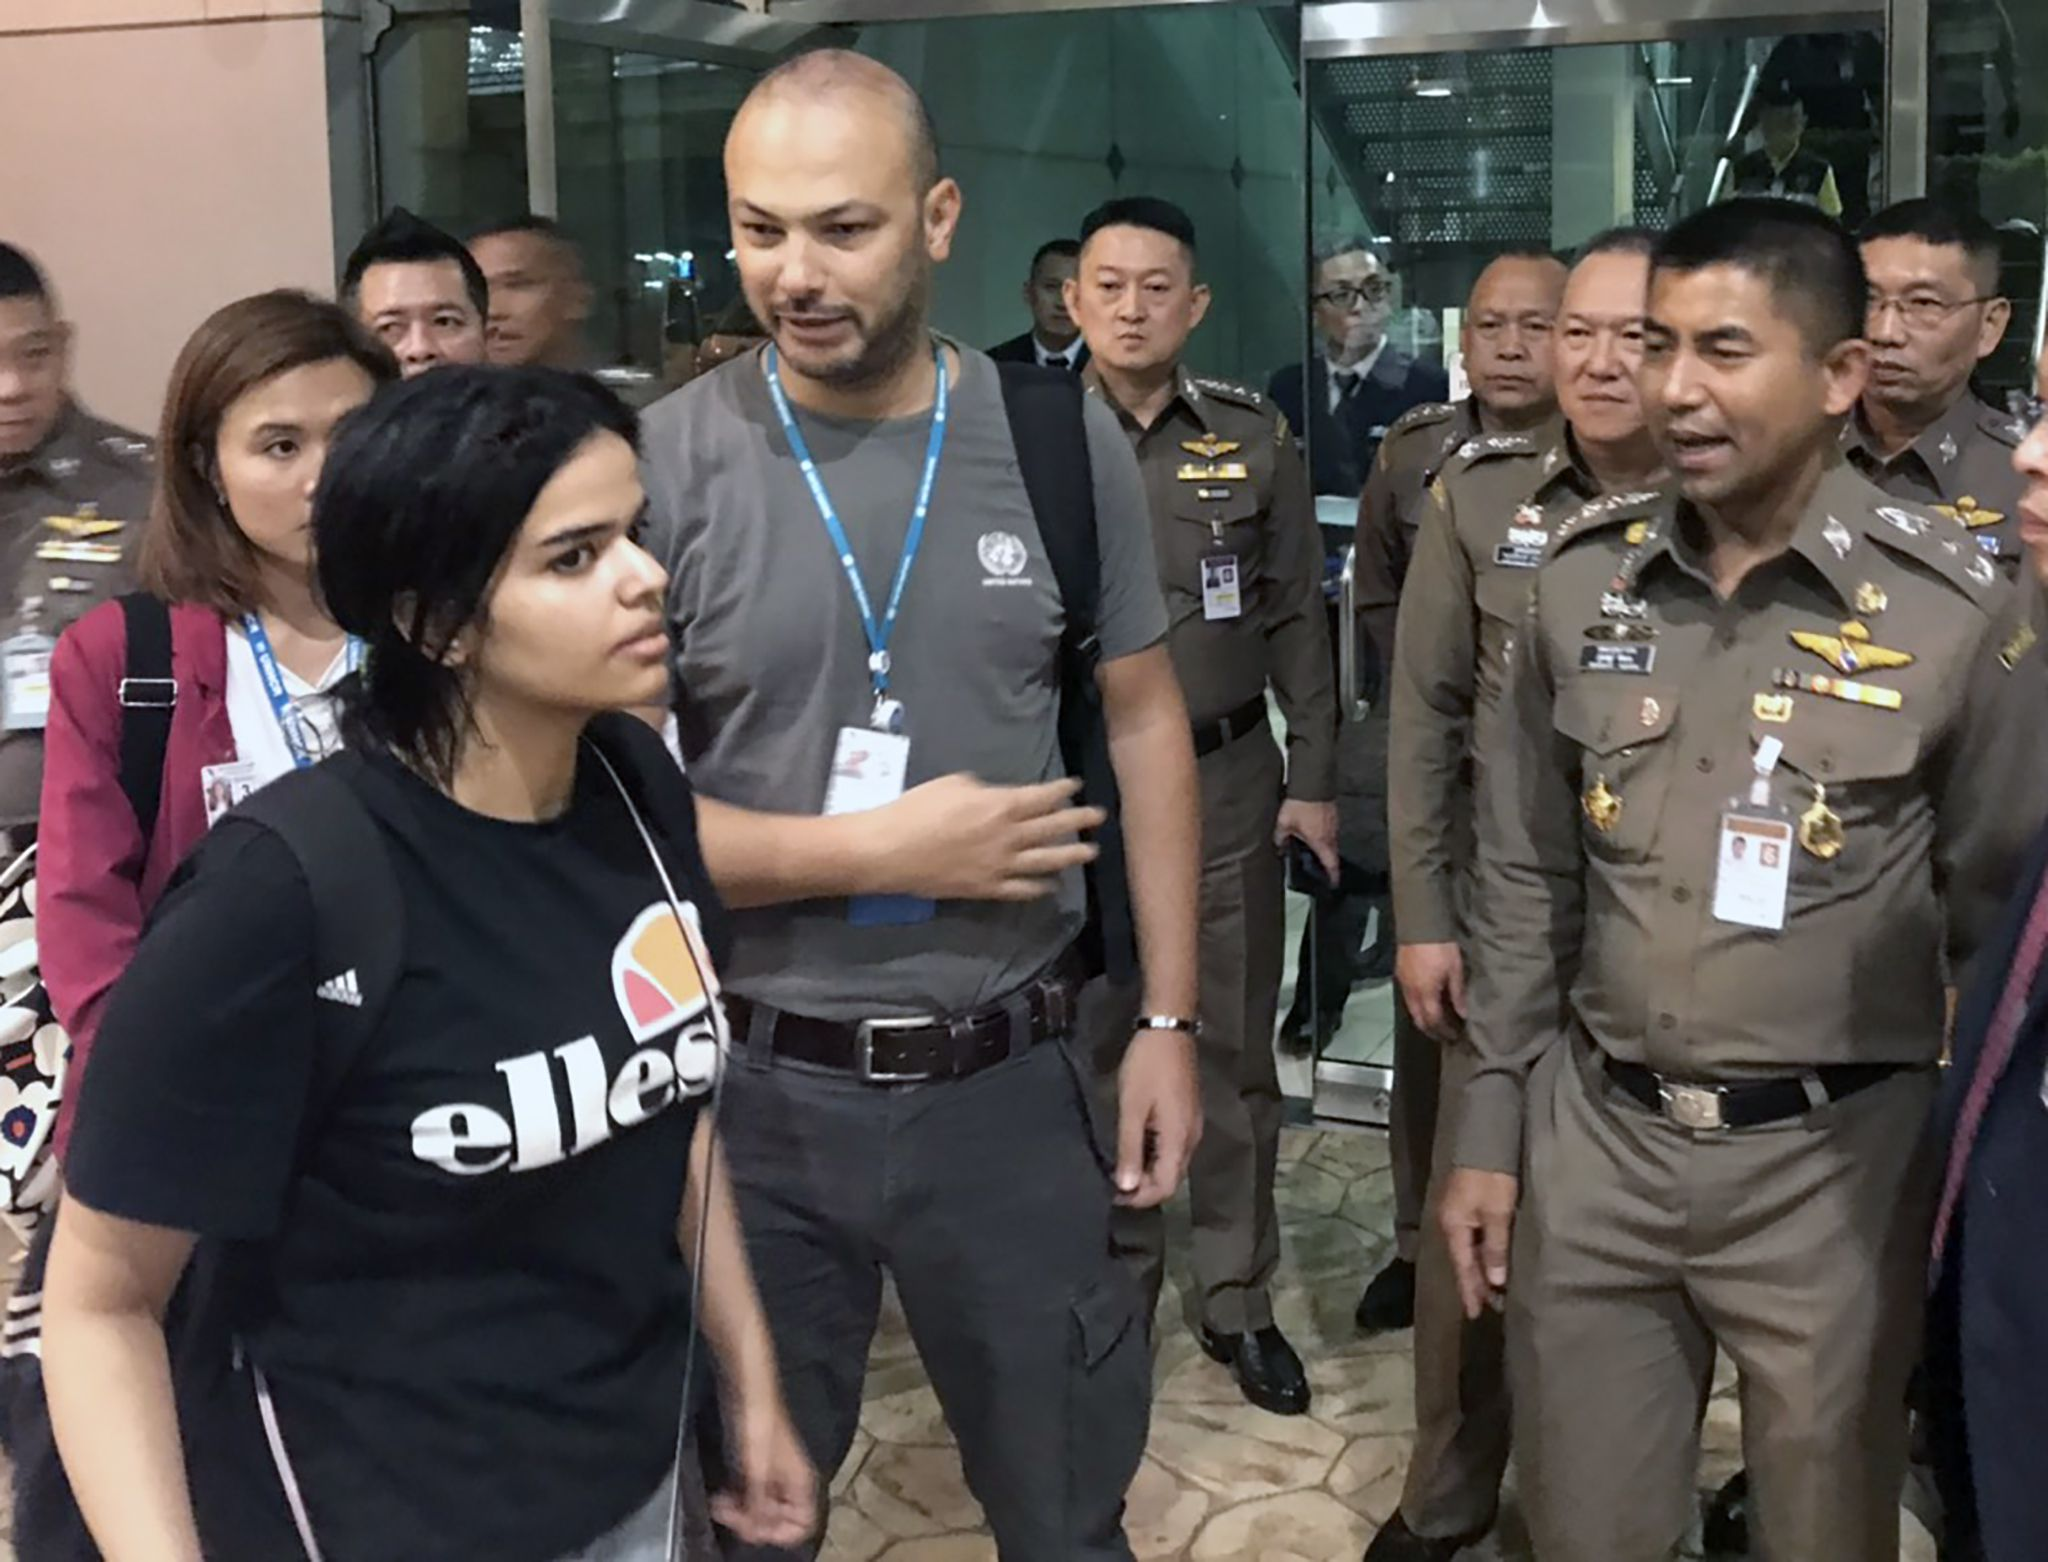 A handout photo made available by the Thai Immigration Bureau shows Saudi woman who seeking for asylum Rahaf Mohammed al-Qunun talks with Thai Immigration Police Chief Surachet Hakparn at the Suvarnabhumi international airport in Samut Prakan province, on the outskirts of Bangkok, Thailand, on Jan. 7, 2019. The Saudi teen was stopped at the airport as she was traveling to Australia for asylum after she claimed that she was abused by her family.